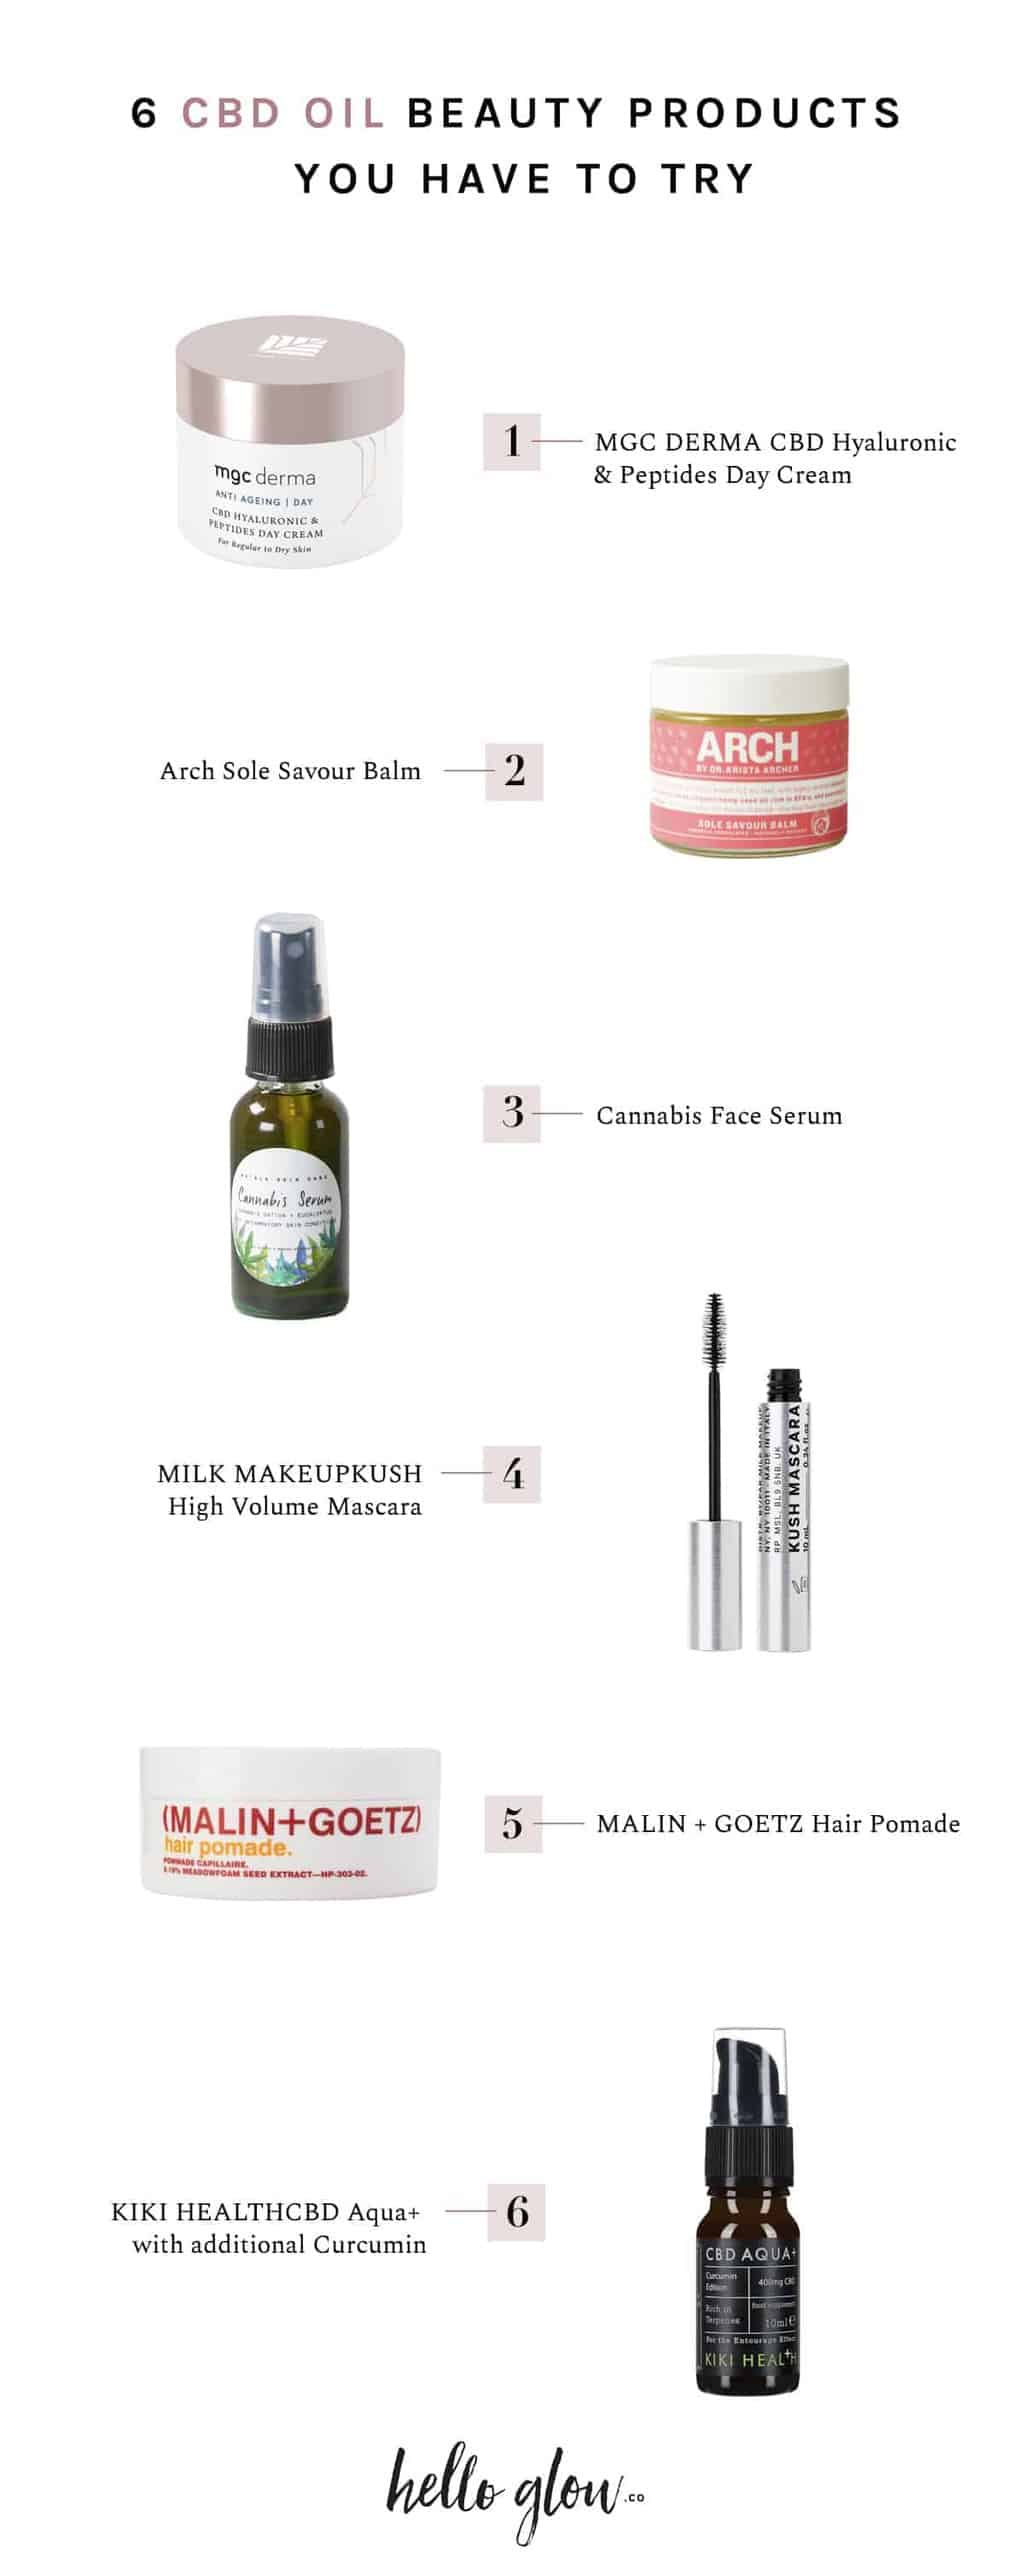 6 CBD Beauty Products You Have to Try